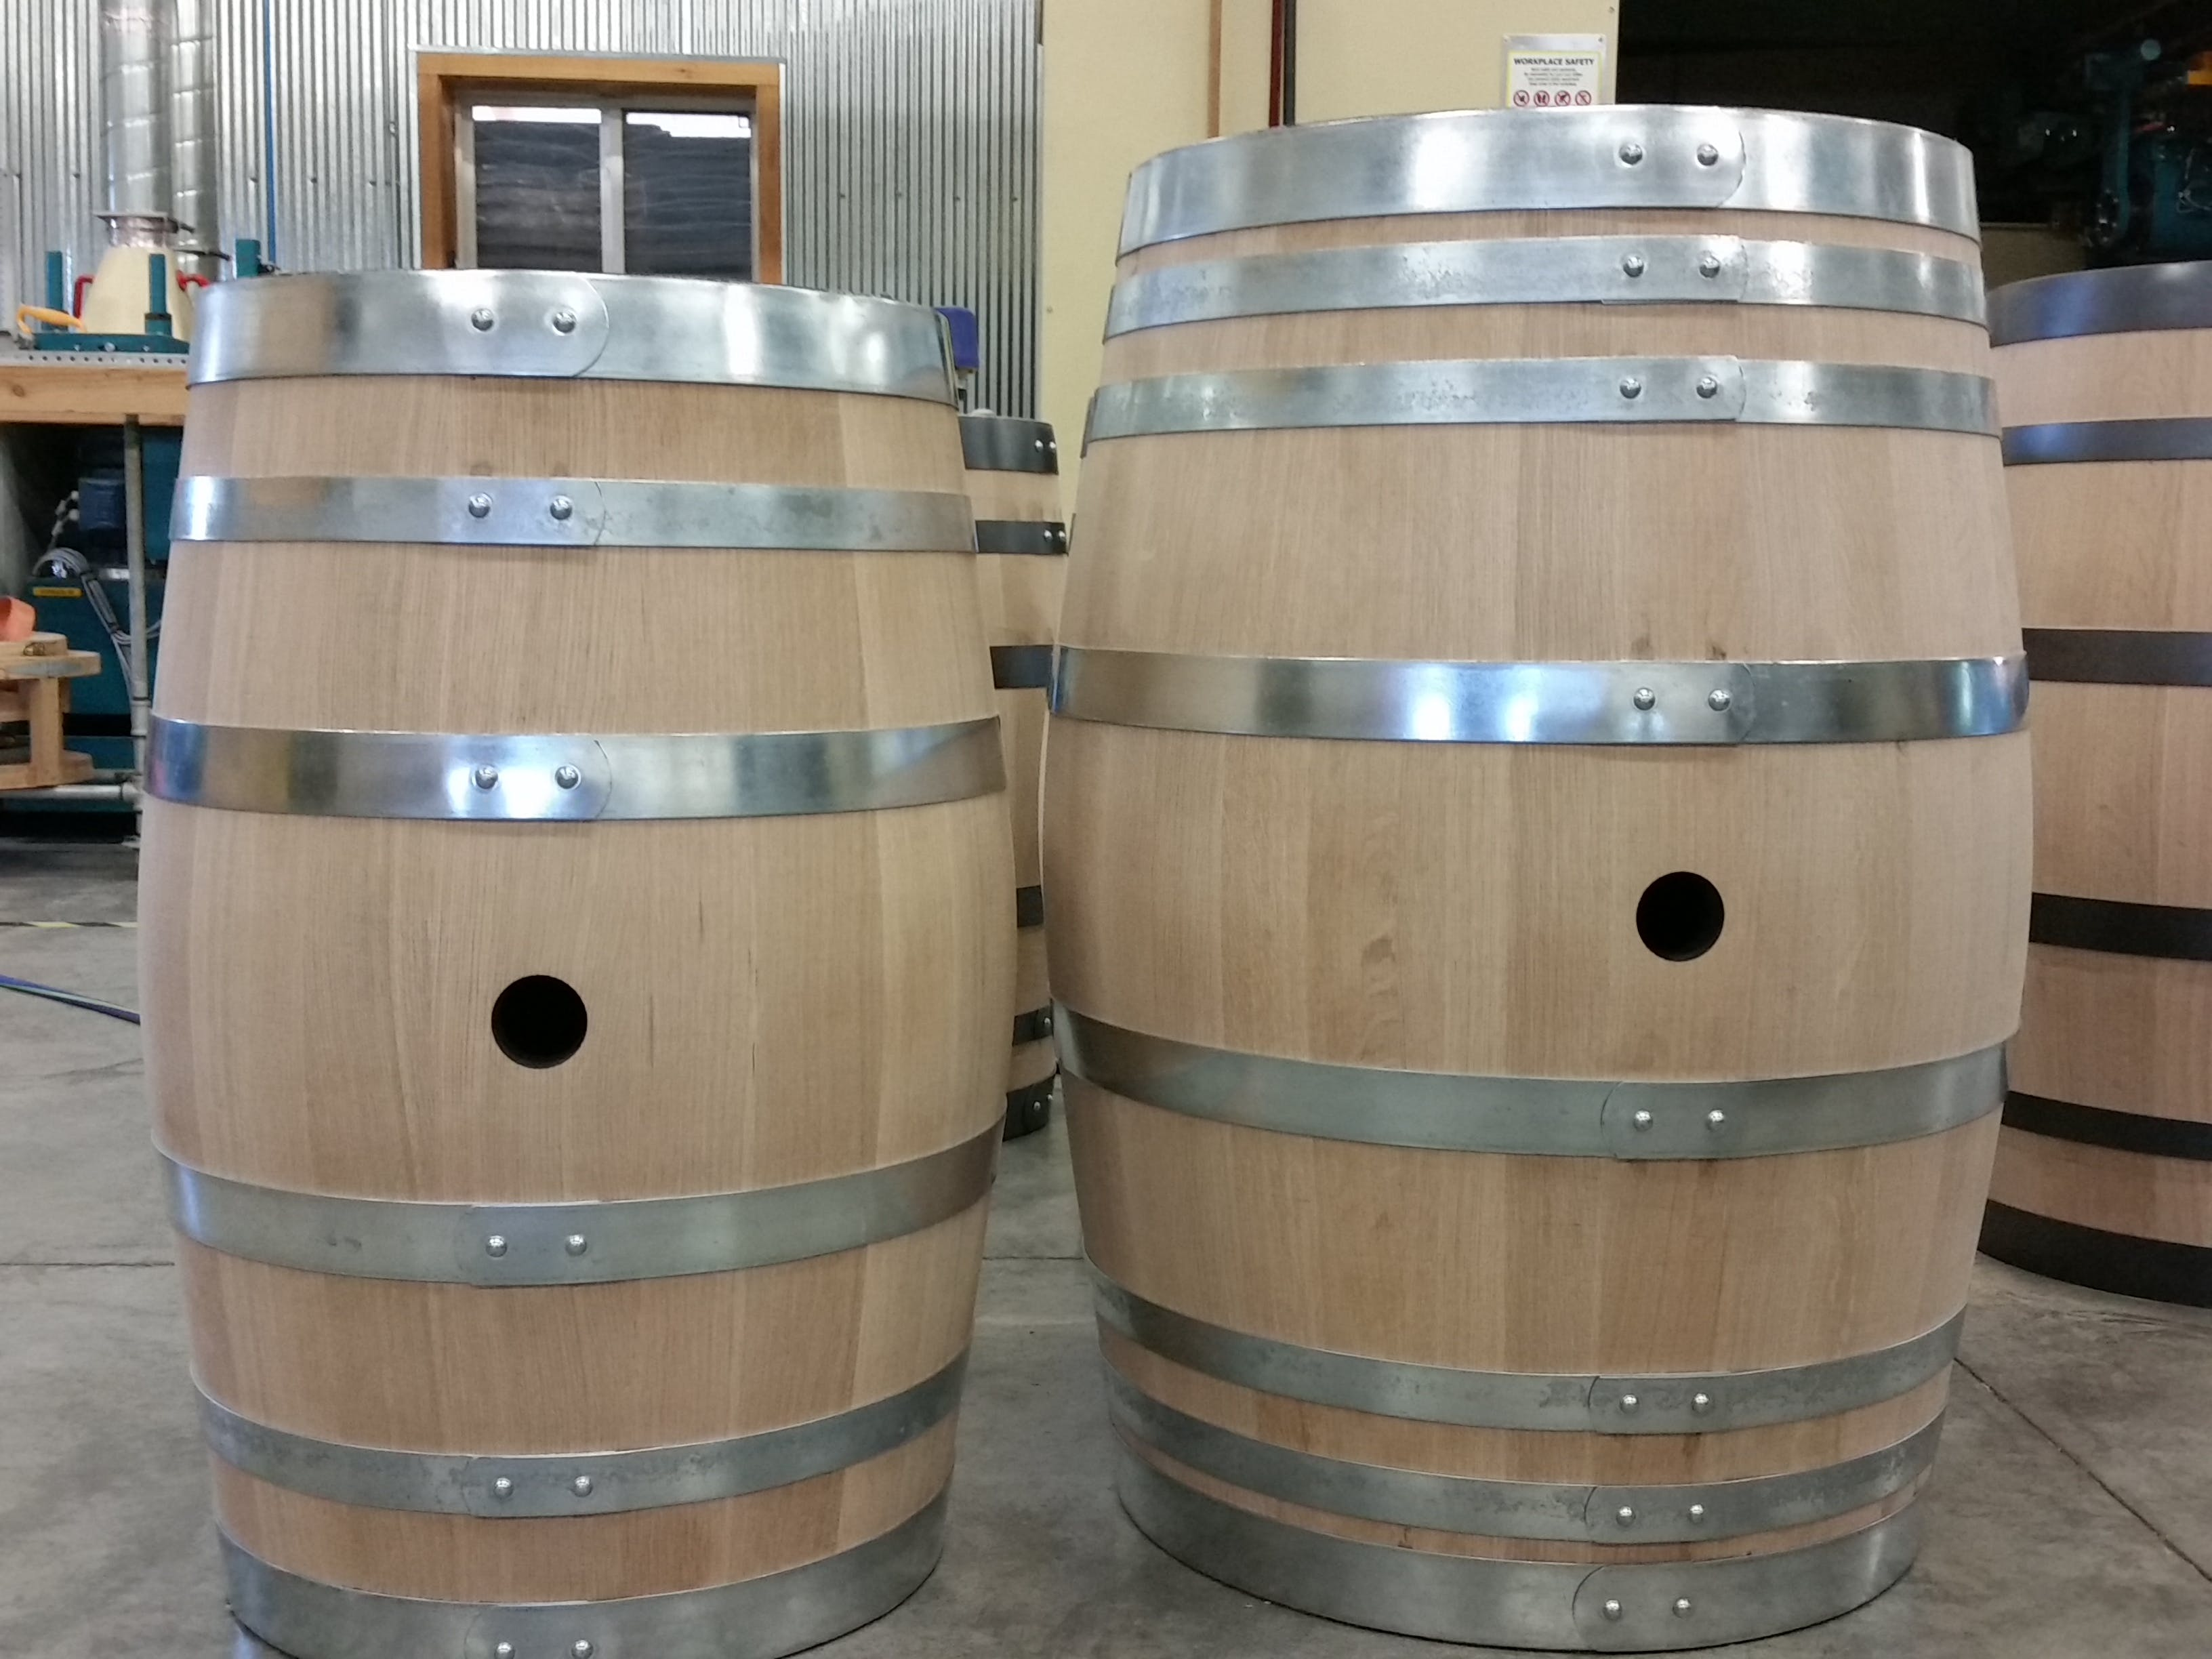 Wine Barrels Barrel sold by Adirondack Barrel Cooperage LLC